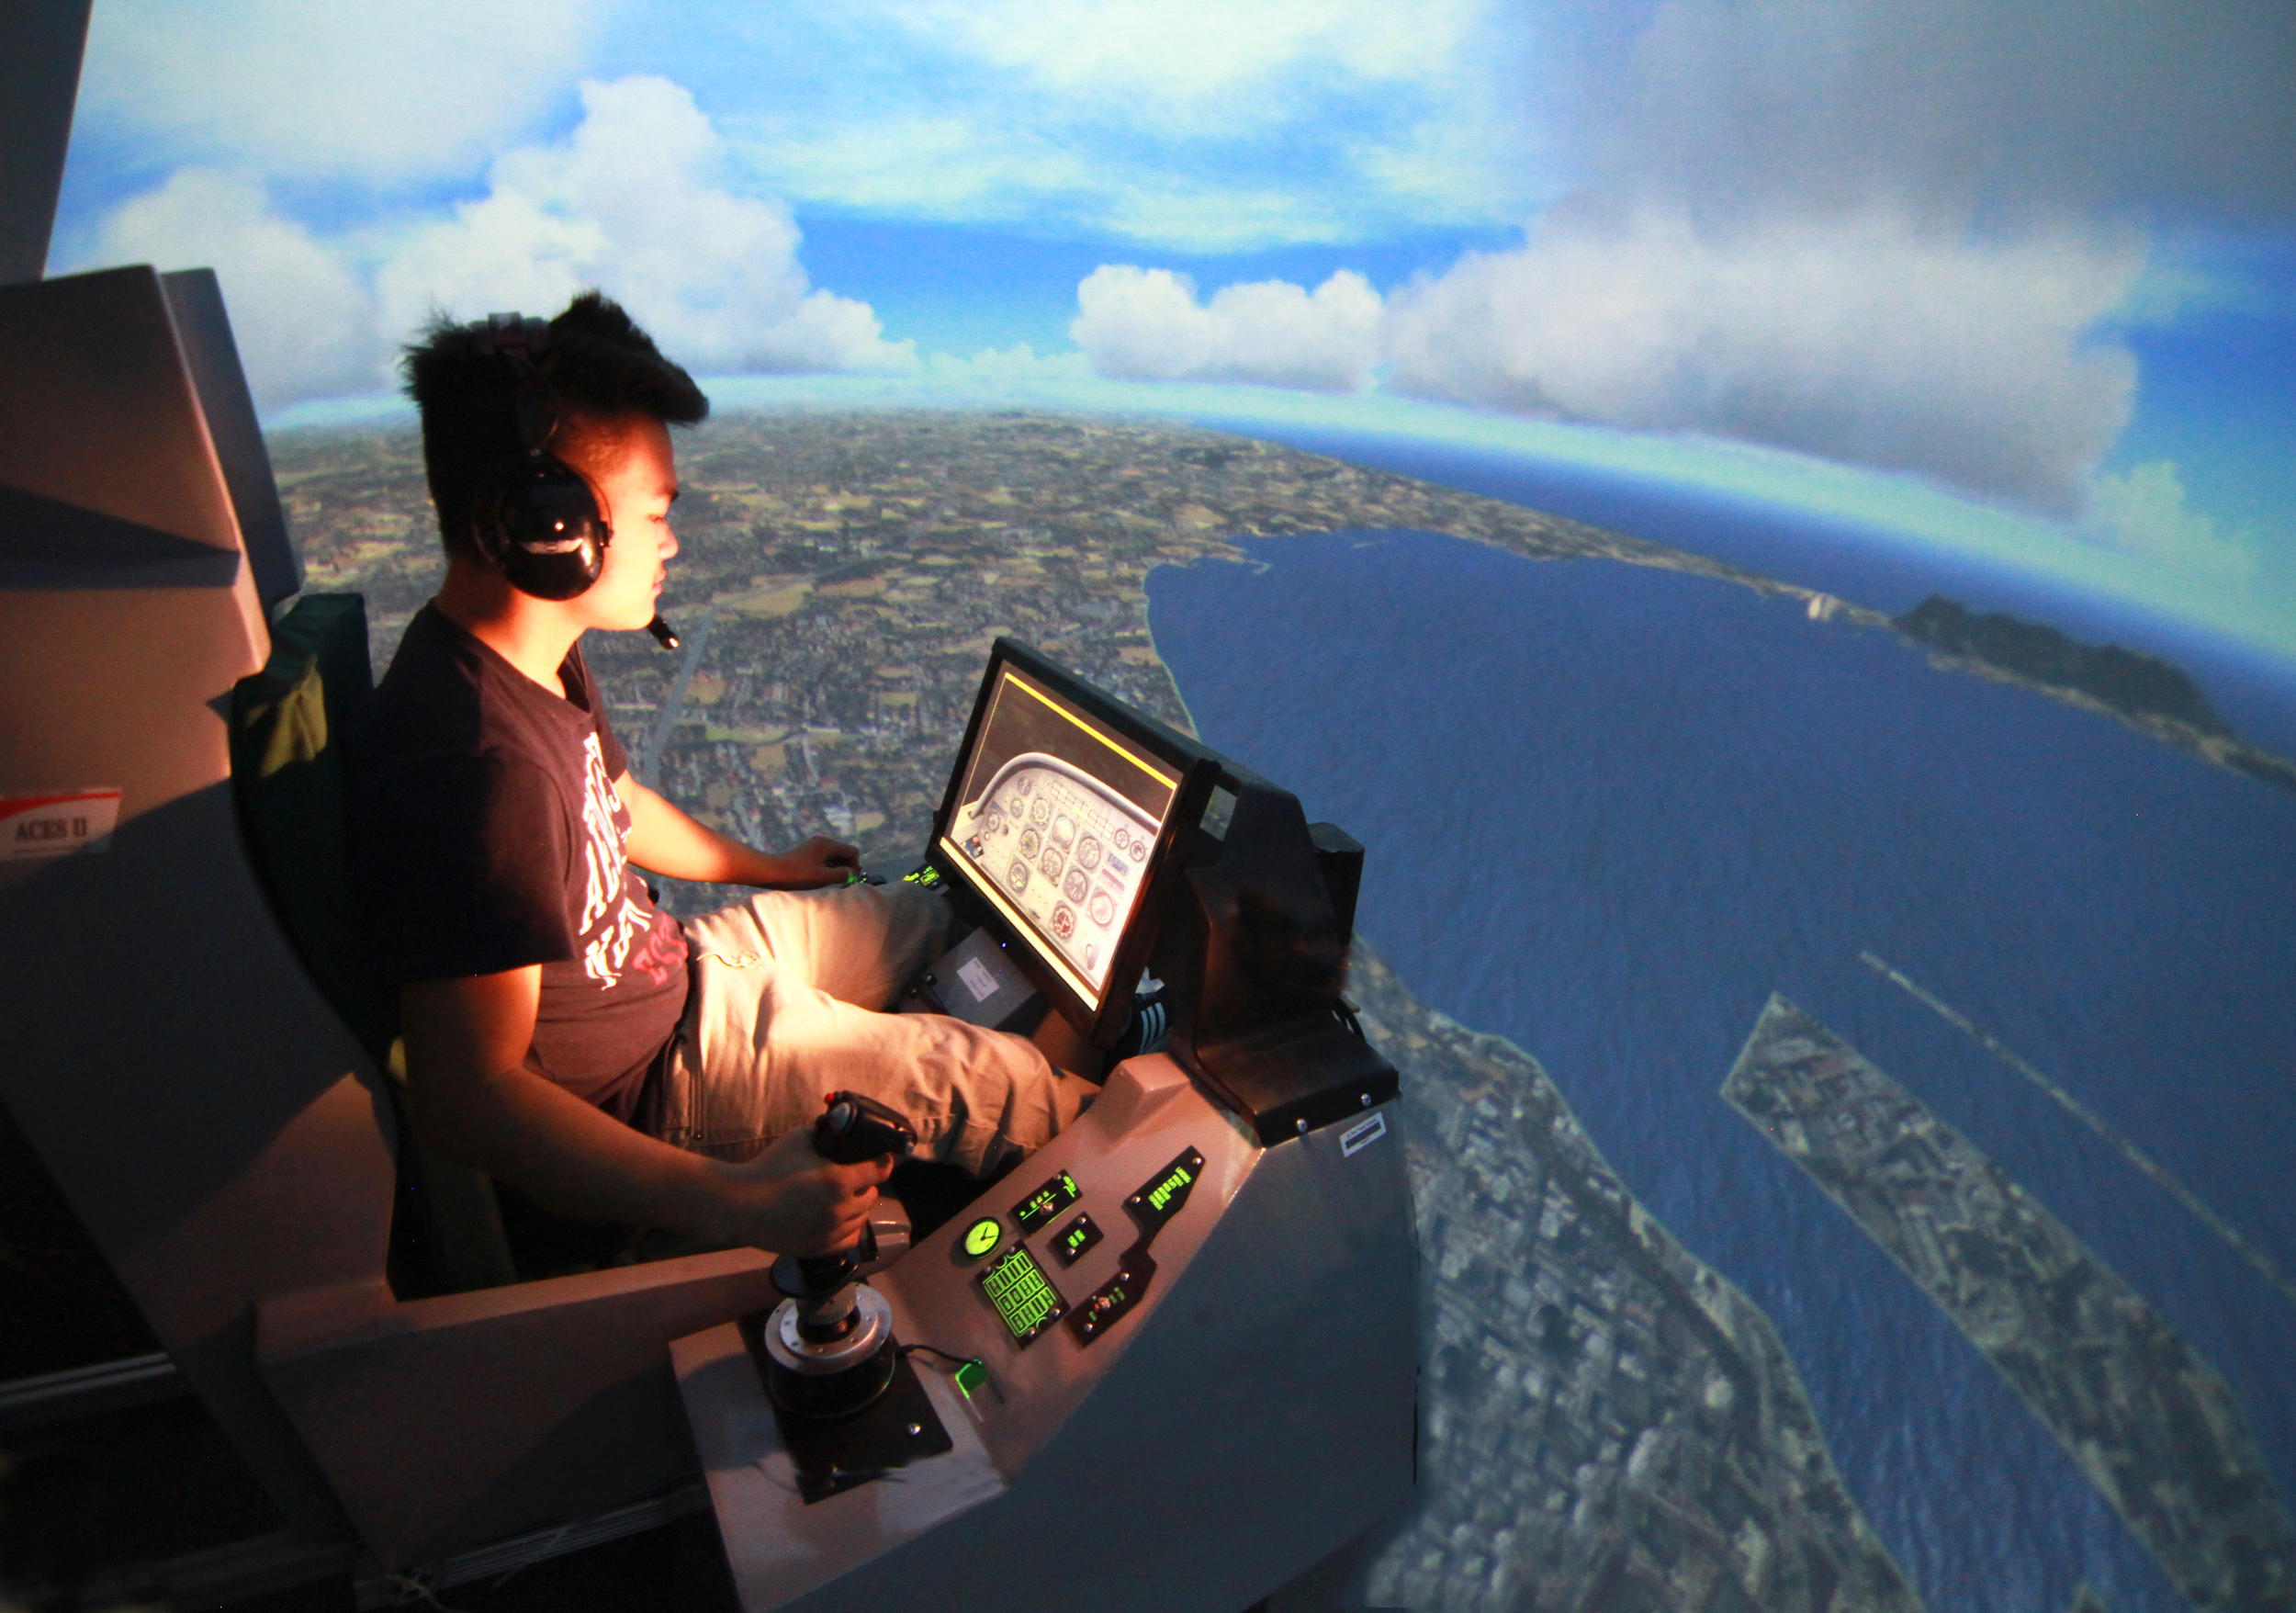 Student flying final approach, Surround View Flight Simulator